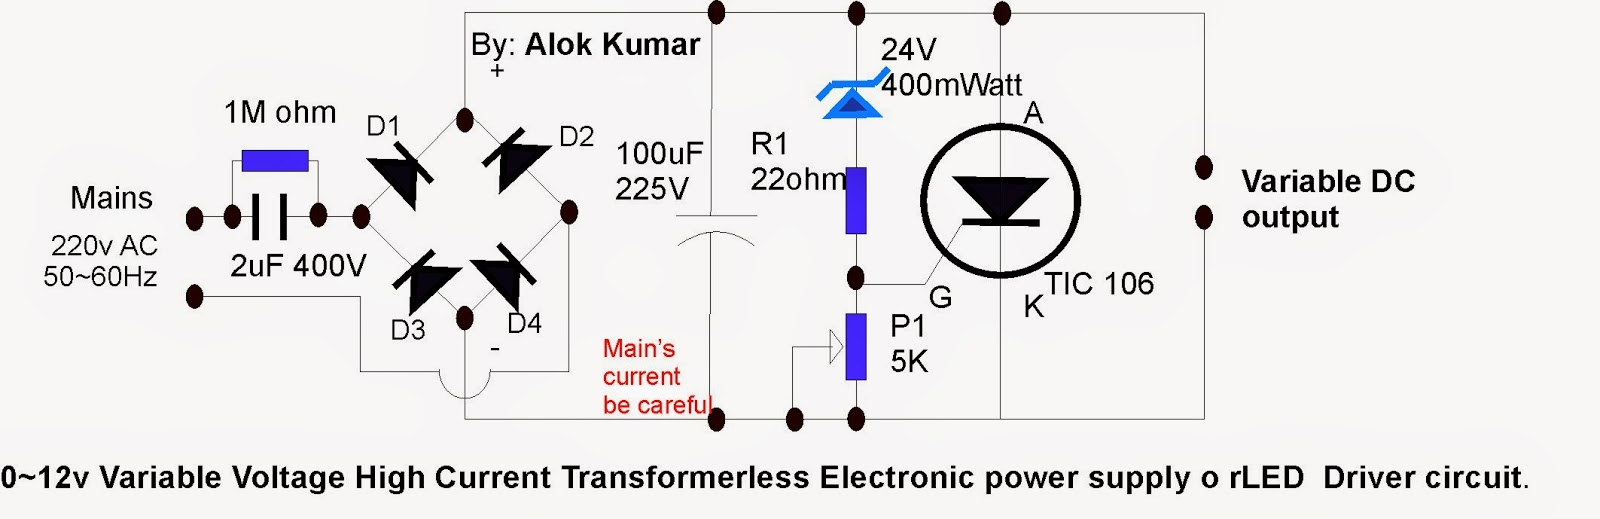 medium resolution of electronic circuits transformerless power supply led drivers circuit diagram circuit diagram battery charger using scr